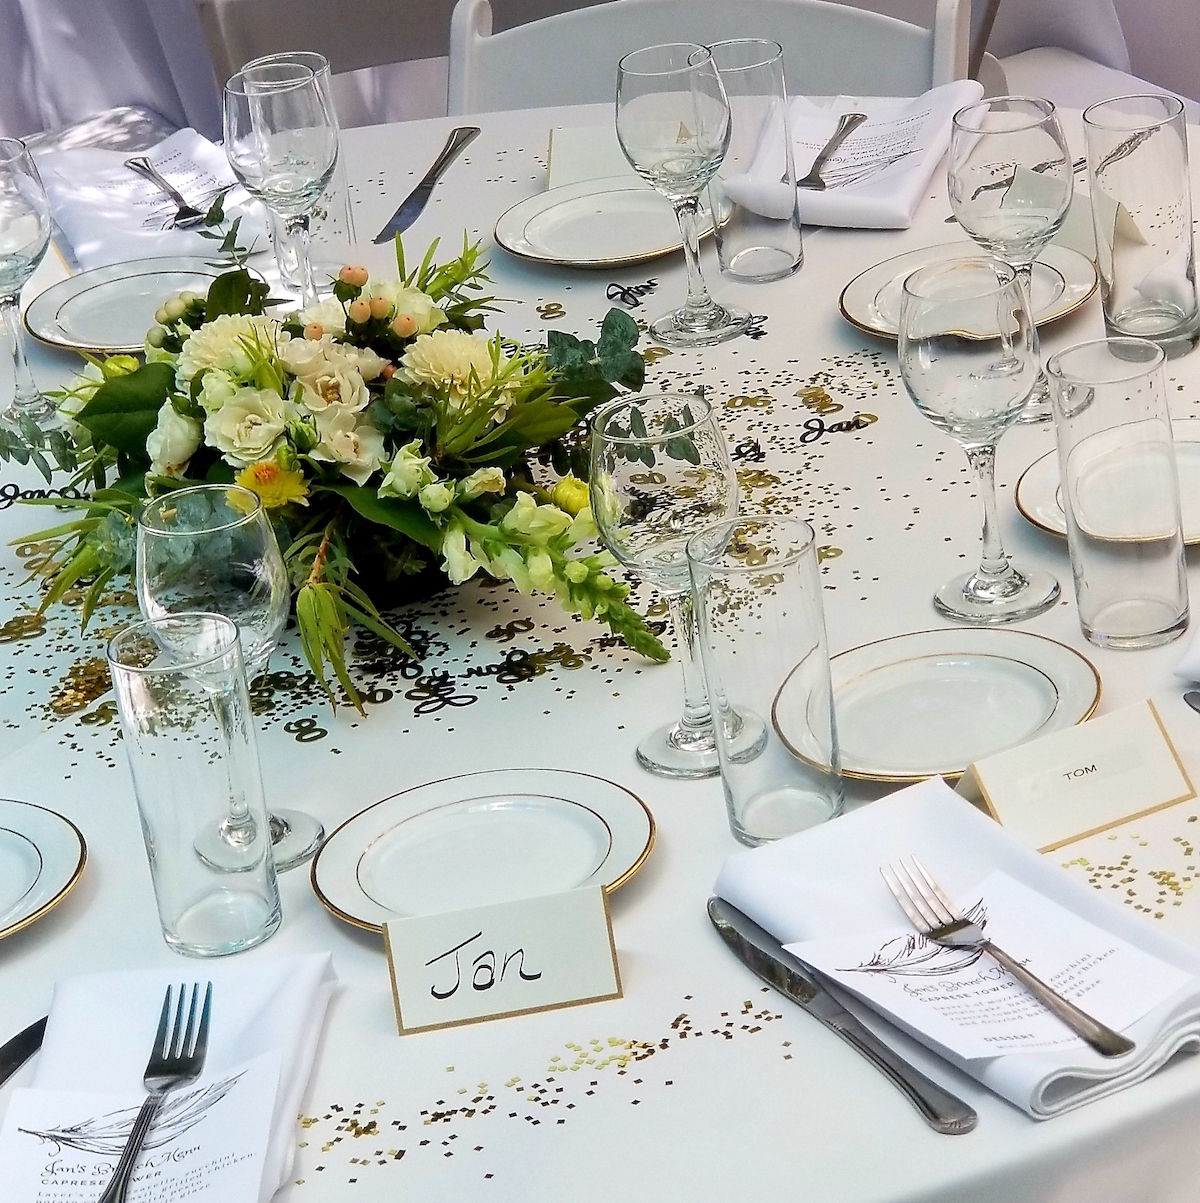 - Another service that is offered for any of our catering and personal chef events is full service planning from beginning to end and that includes coordinating any rentals or vendors.This theme was very elegant and the tables ended up being beautiful!